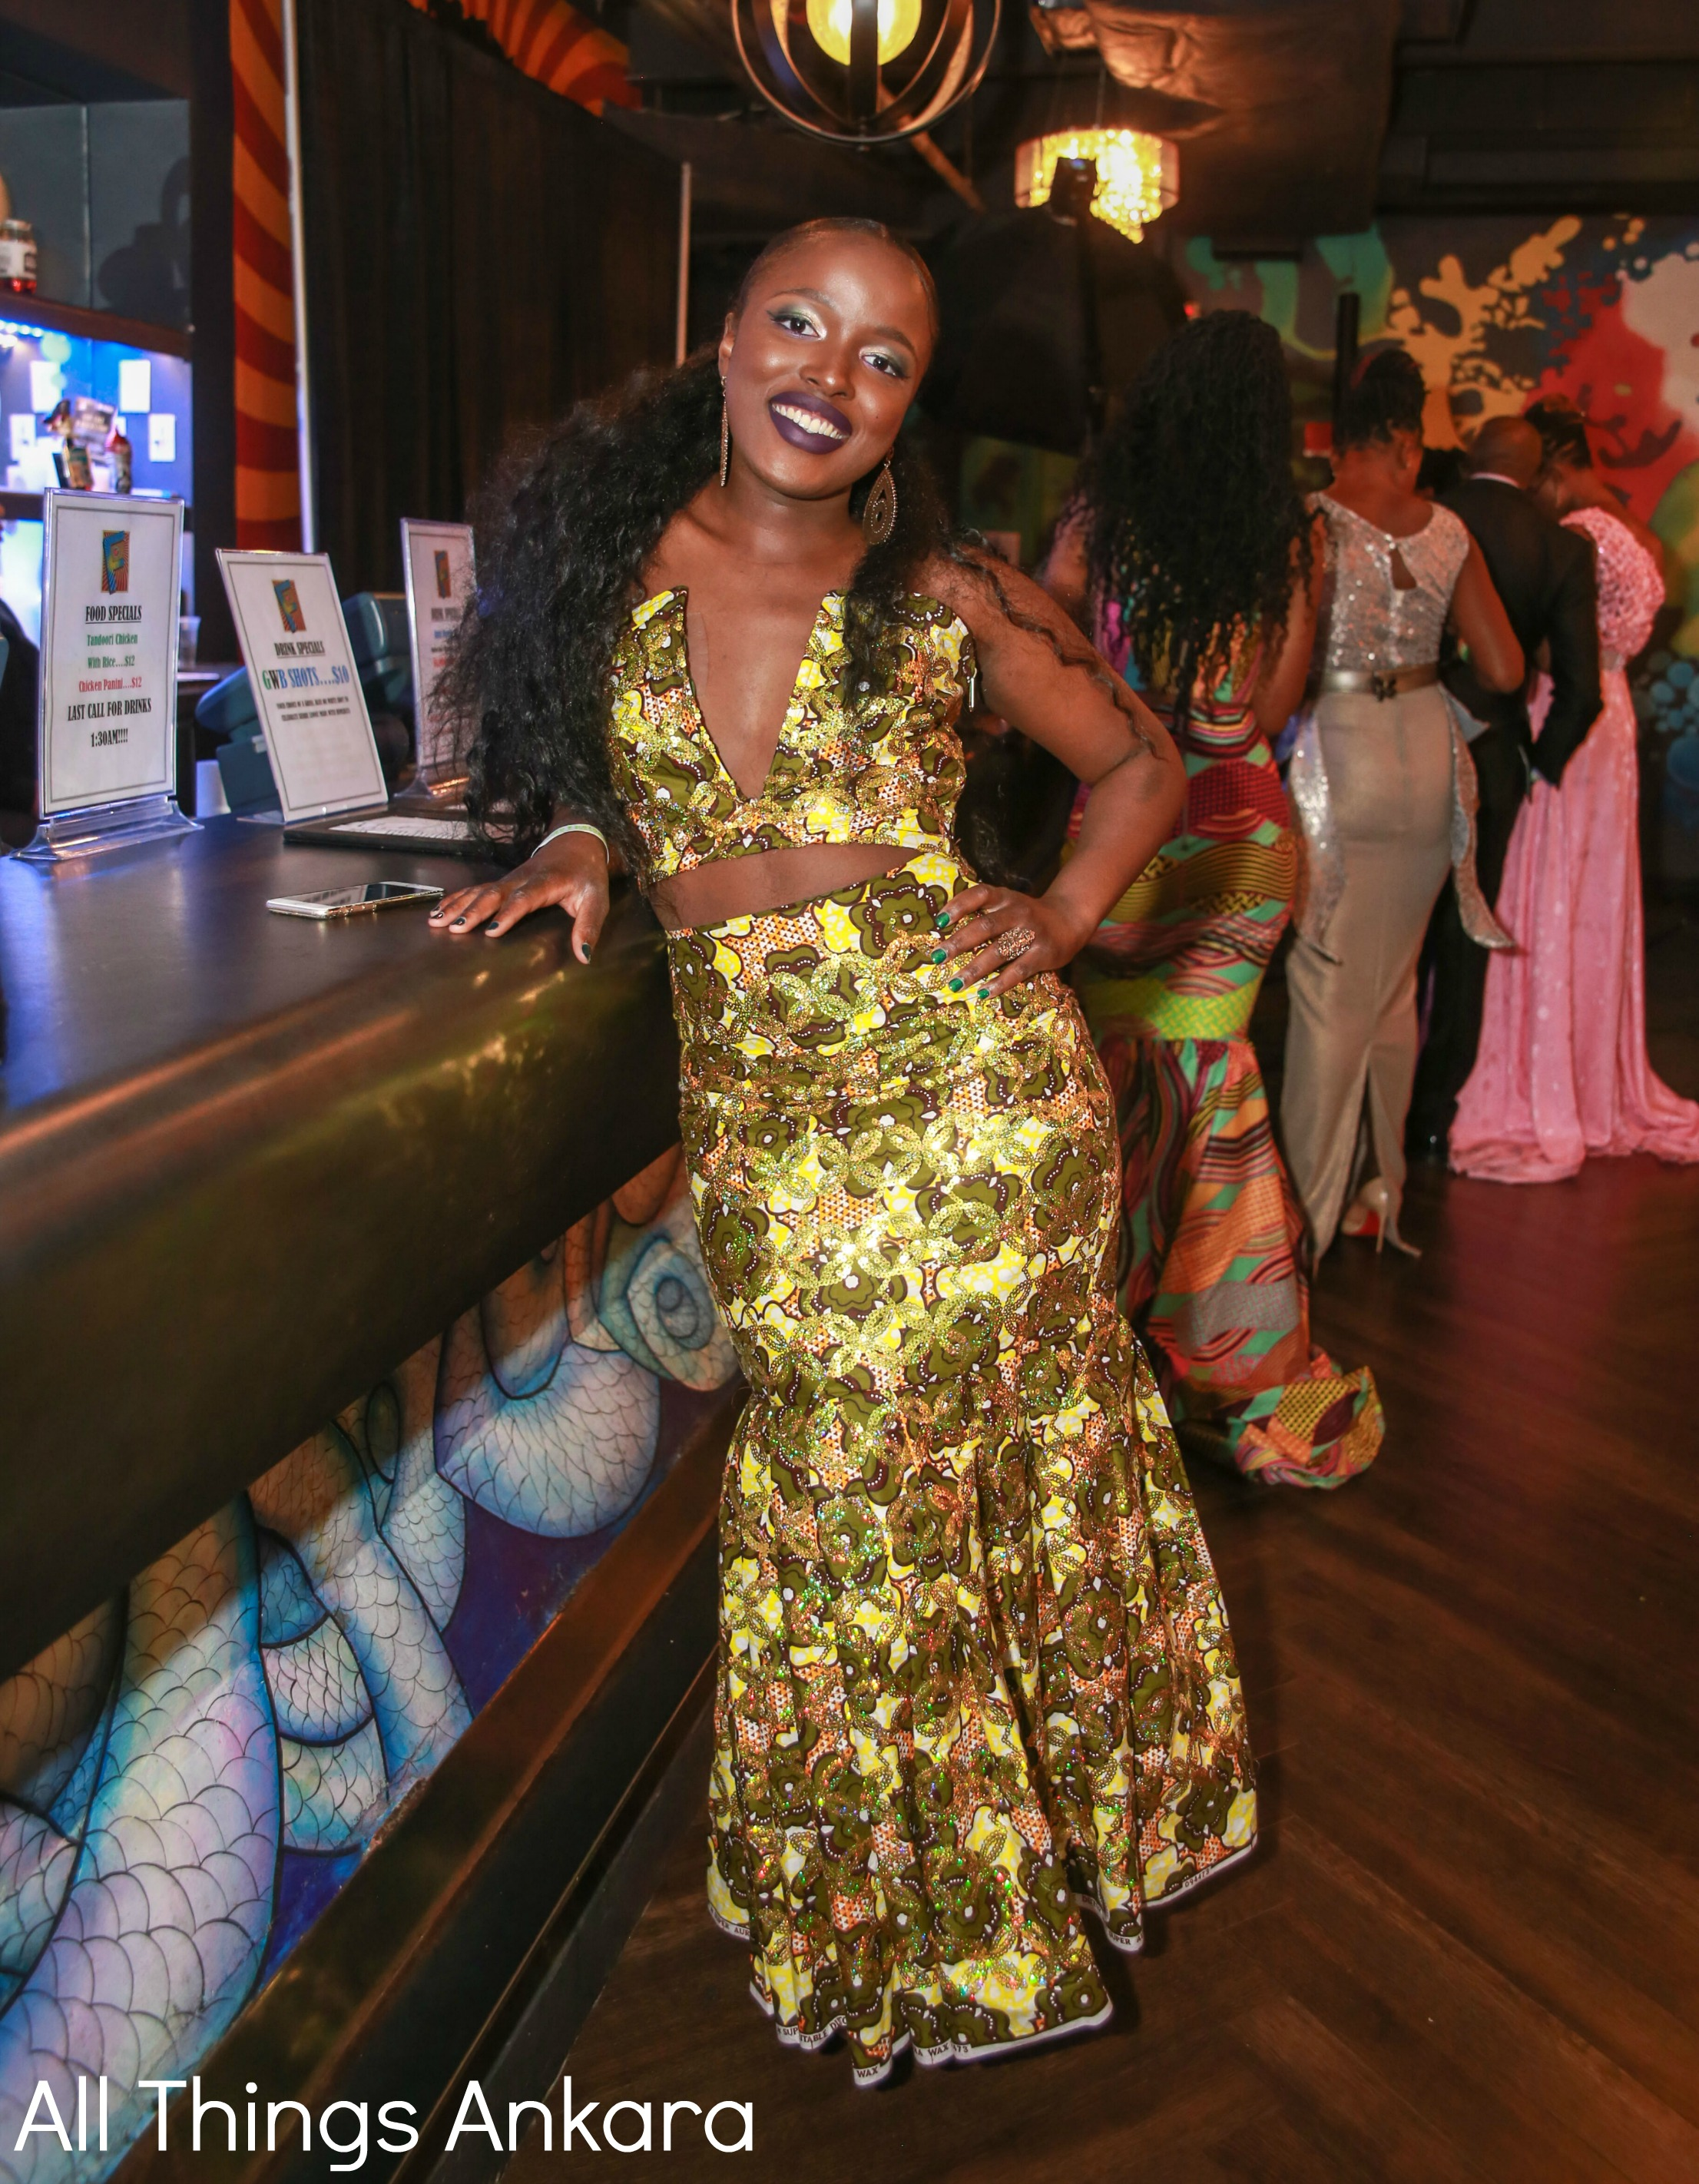 ball-unseen-photos-from-all-things-ankaras-best-dressed-women-at-gwb-commissions-7th-annual-green-white-blue-ball-2016-6